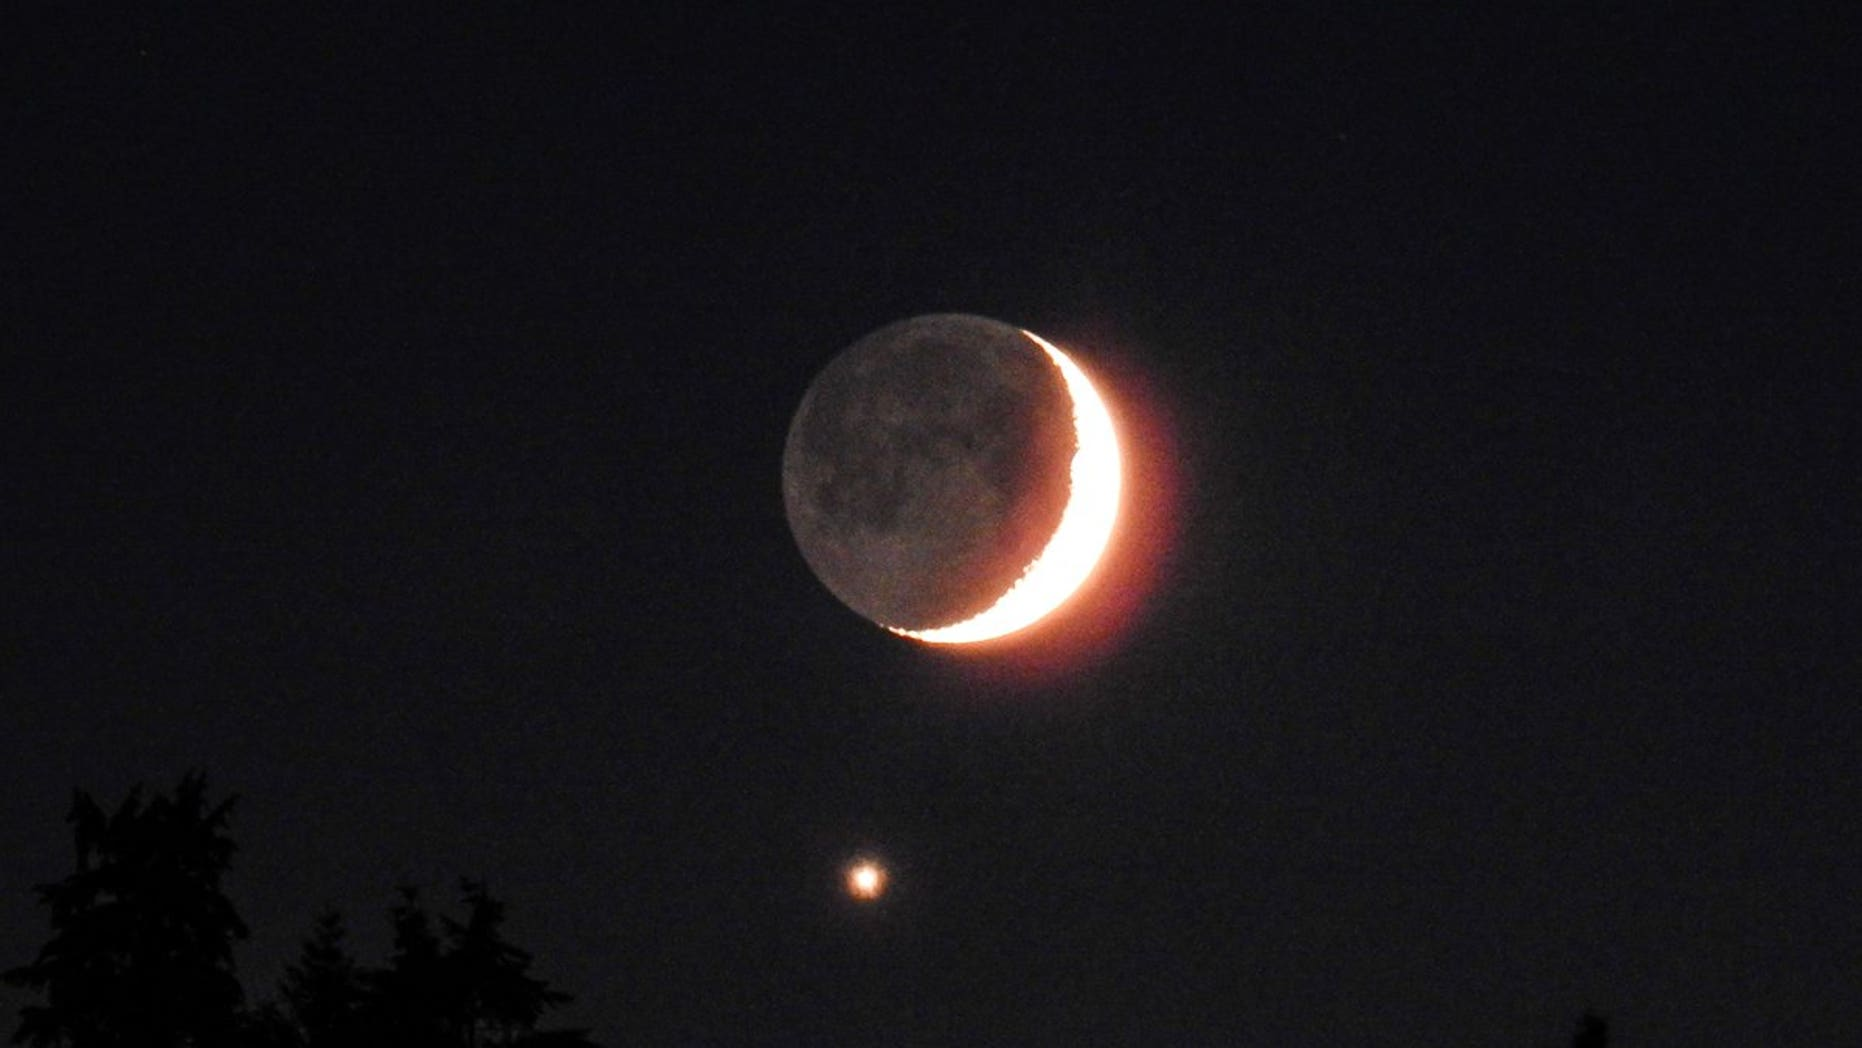 Venus and the moon appeared close in proximity last night as the two made for a breathtaking scene.